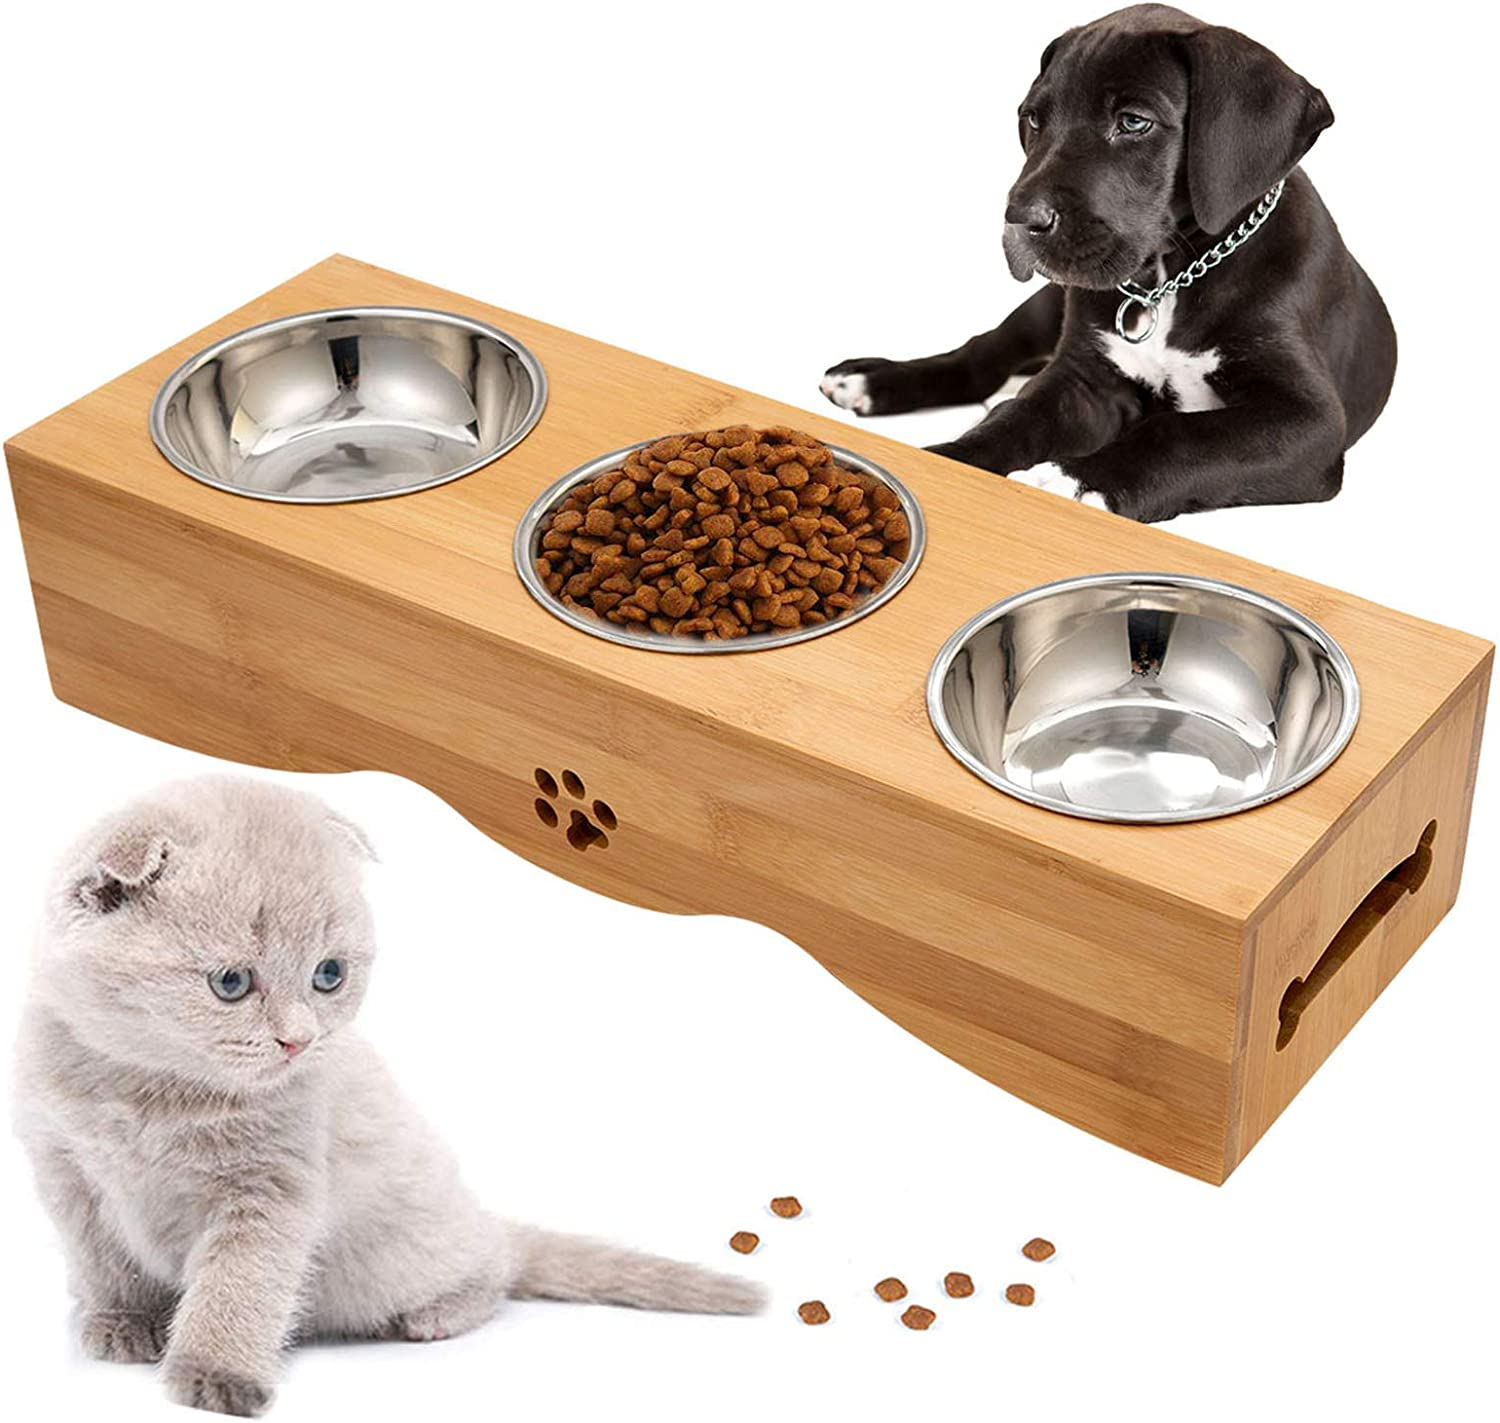 Raised Pet Bowls Elevated Pet Feeder Bowl Dog Cat Feeder Bowls Bamboo Cat Bowl Stand Holder with Stand and 3 Stainless Bowls for Small Dog Cat